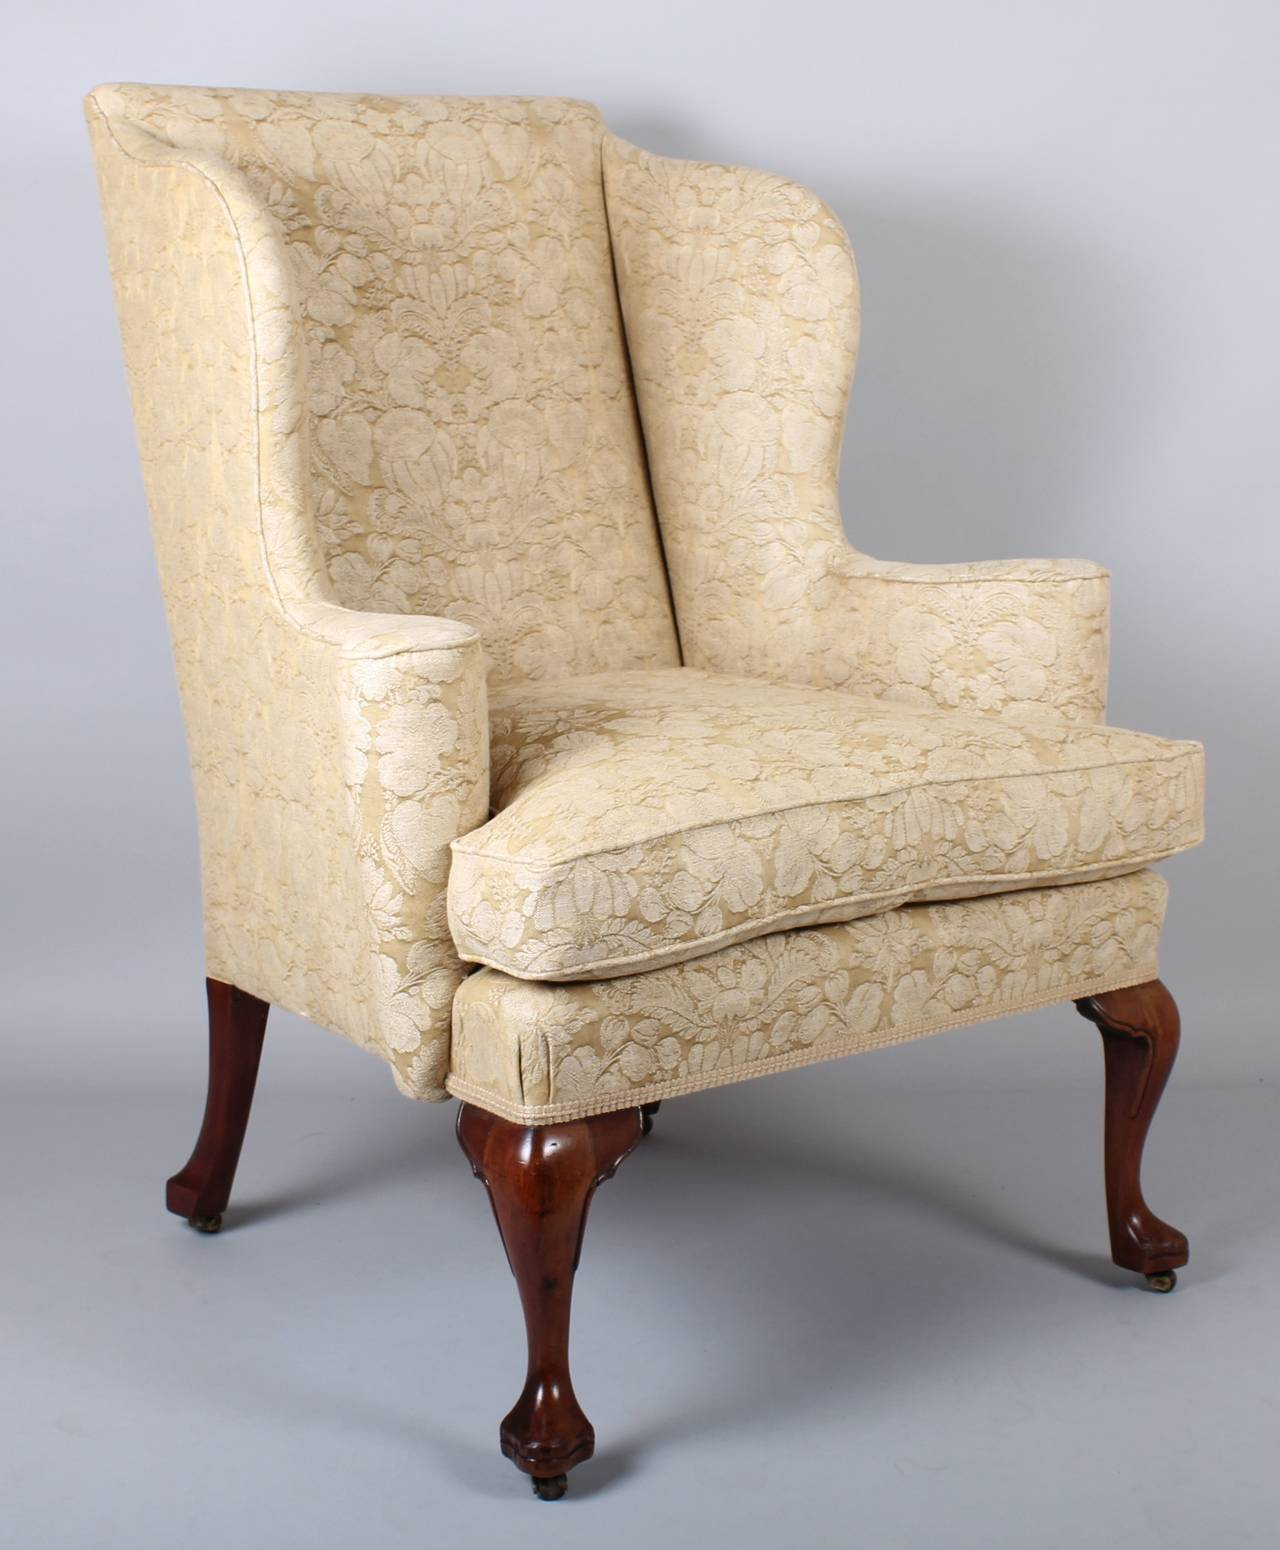 Wingback Chair on Walnut Cabriole Legs in the Classic